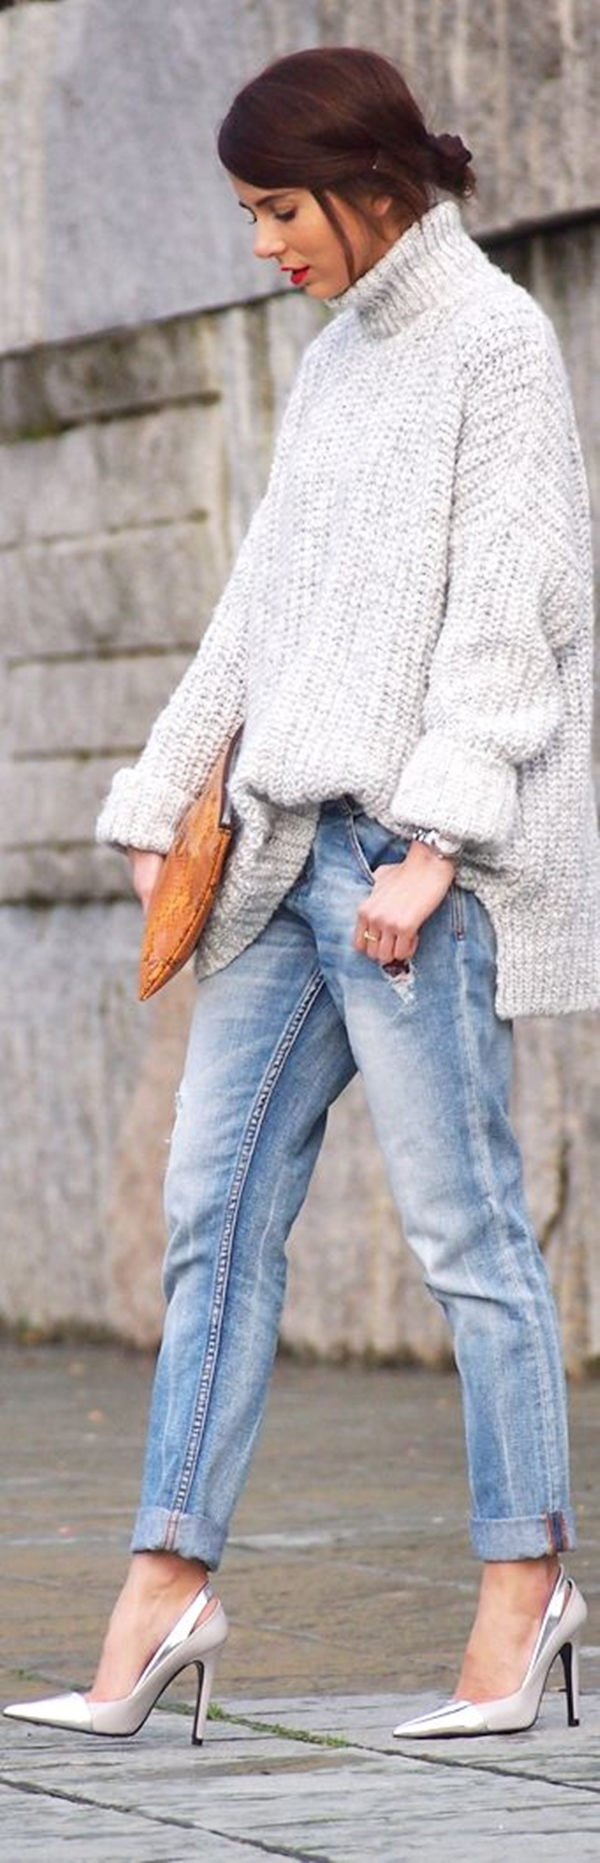 Fashion-Outfits-to-steal-from-your-Boyfriend's-Wardrobe-16